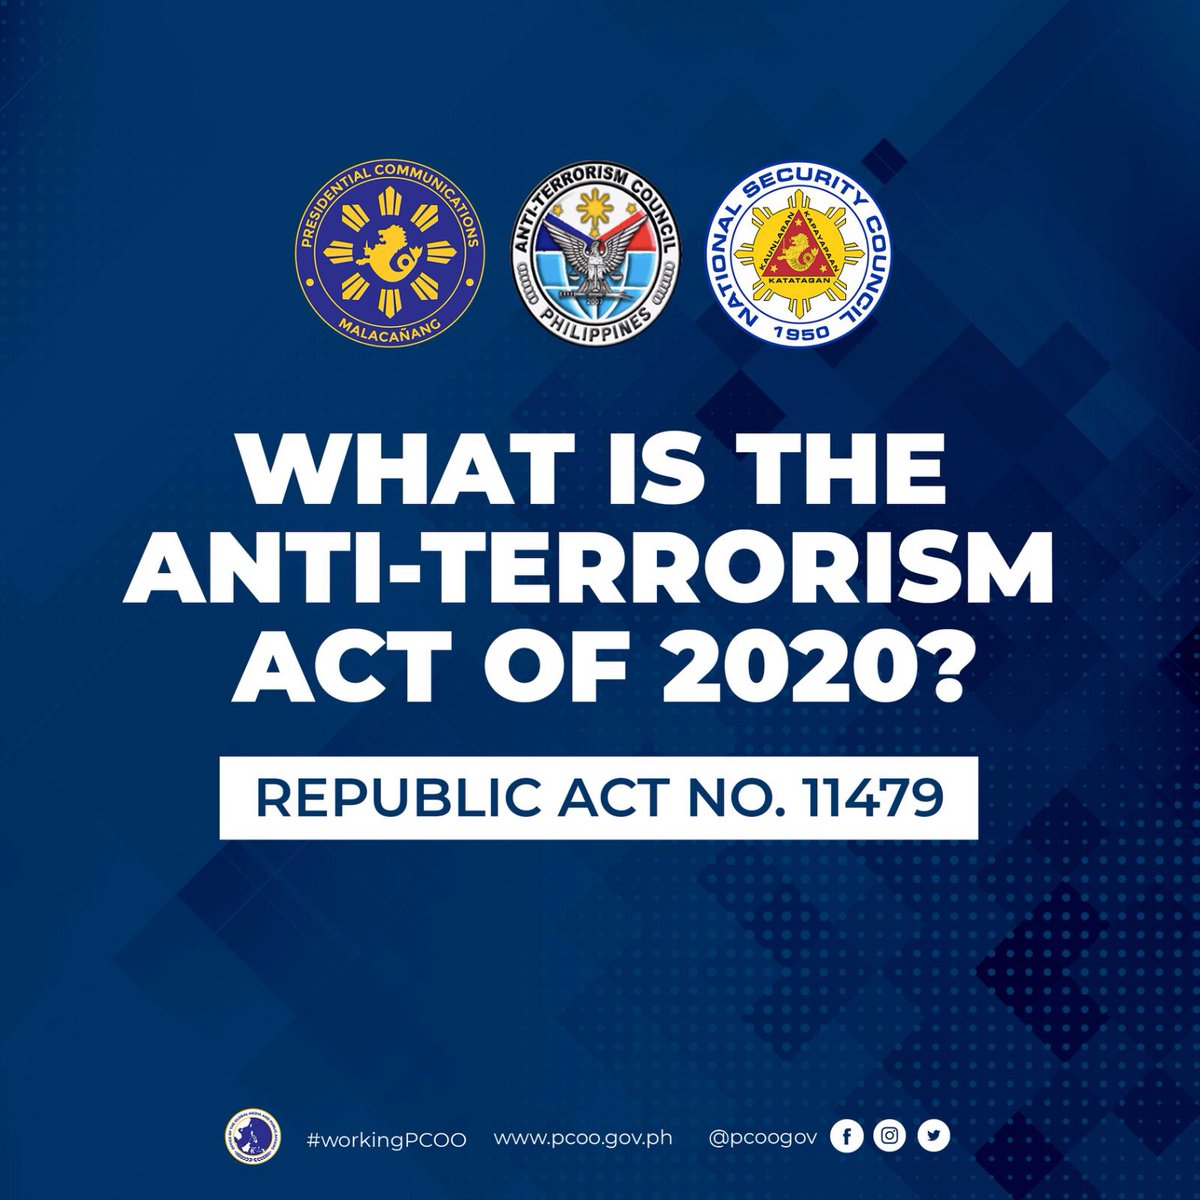 LOOK: Here are the acts constituting terrorism as enumerated in Republic Act 11479, also known as the 'Anti-Terrorism Act of 2020', which was signed into law by President Rodrigo Roa Duterte yesterday, July 03, 2020.  #workingPCOO #AntiTerrorismAct #YestoAntiTerrorismLaw https://t.co/uWciMvZ3Bm